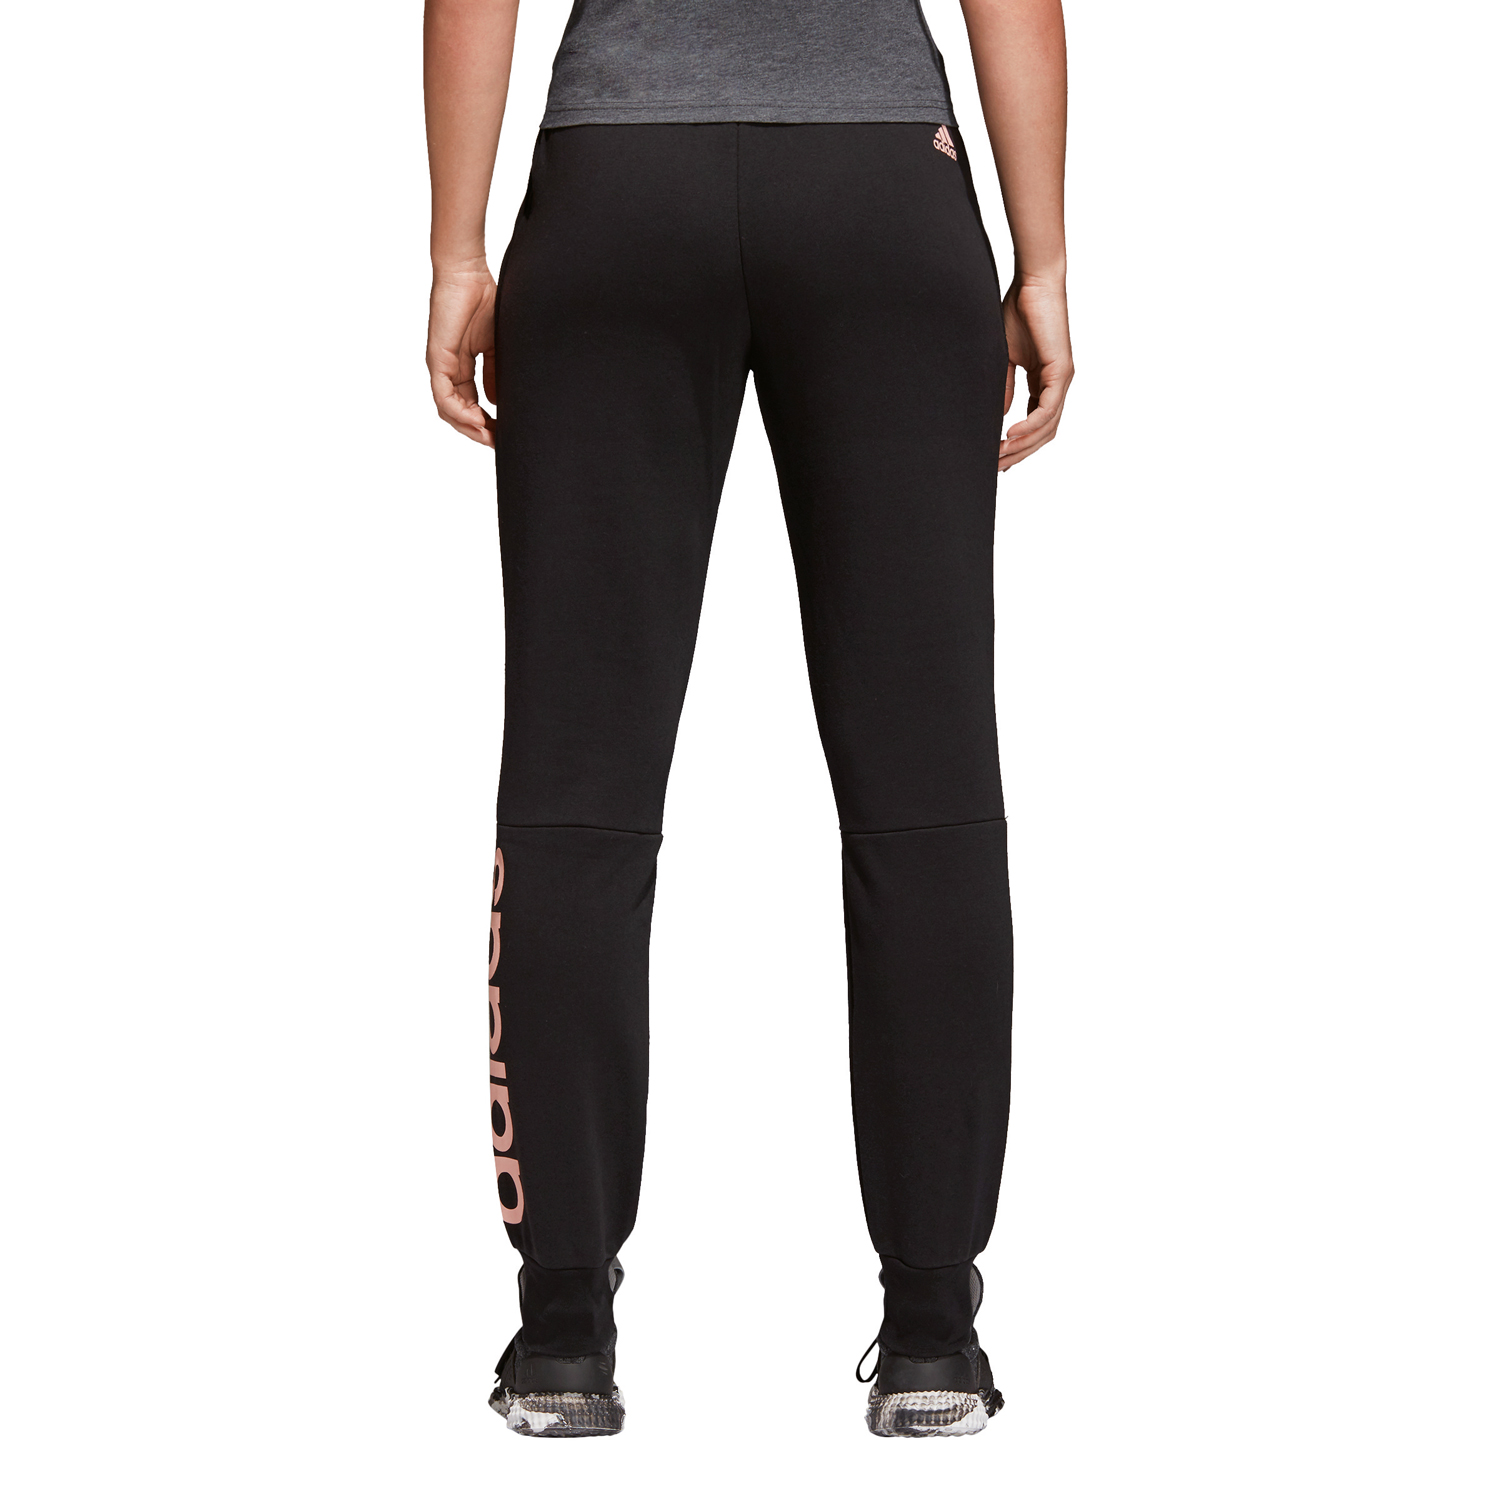 Adidas Essentials Linear Pant Damen Trainingshose – Bild 4